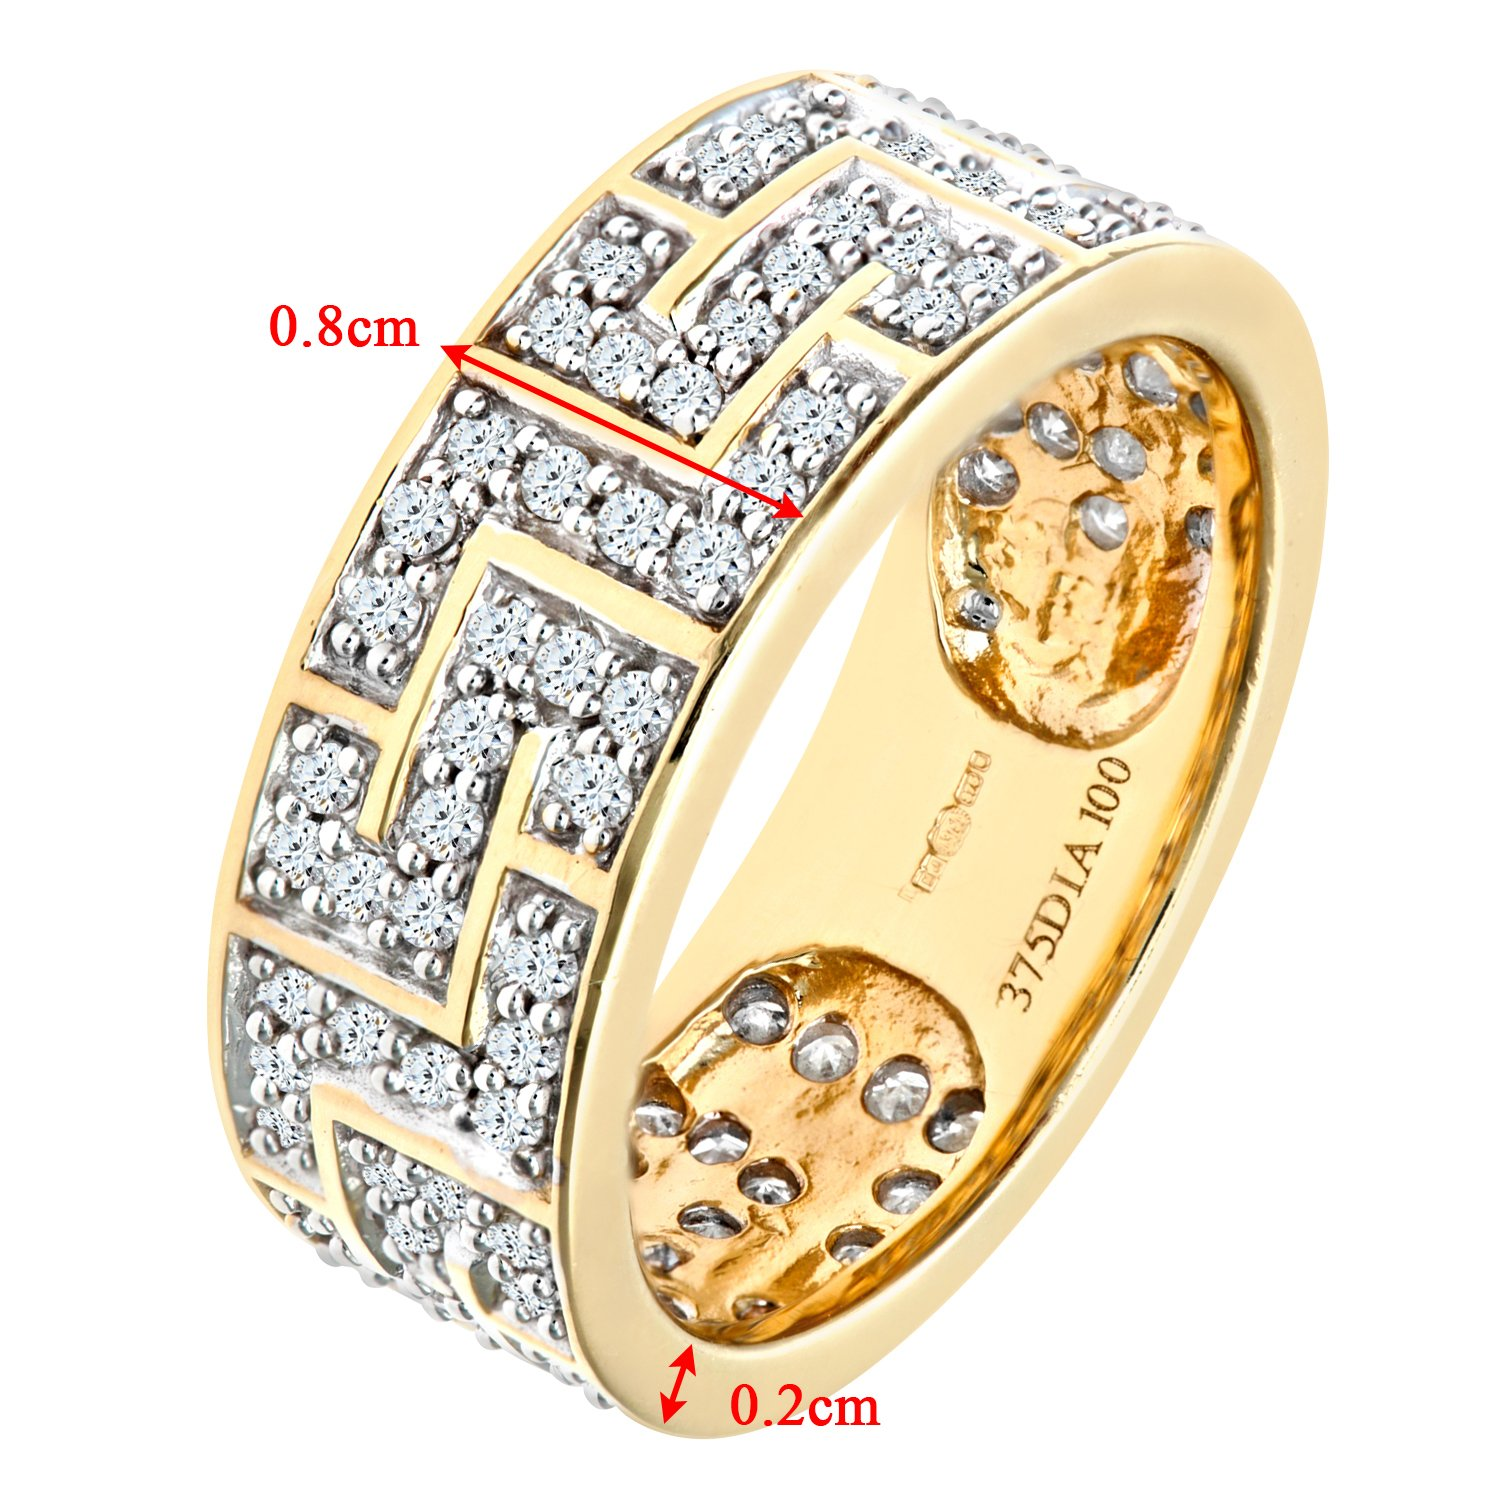 e08388bd0 Naava Bague Homme - Or jaune (9 cts) 5 Gr - Diamant 0.01 Cts: Amazon ...